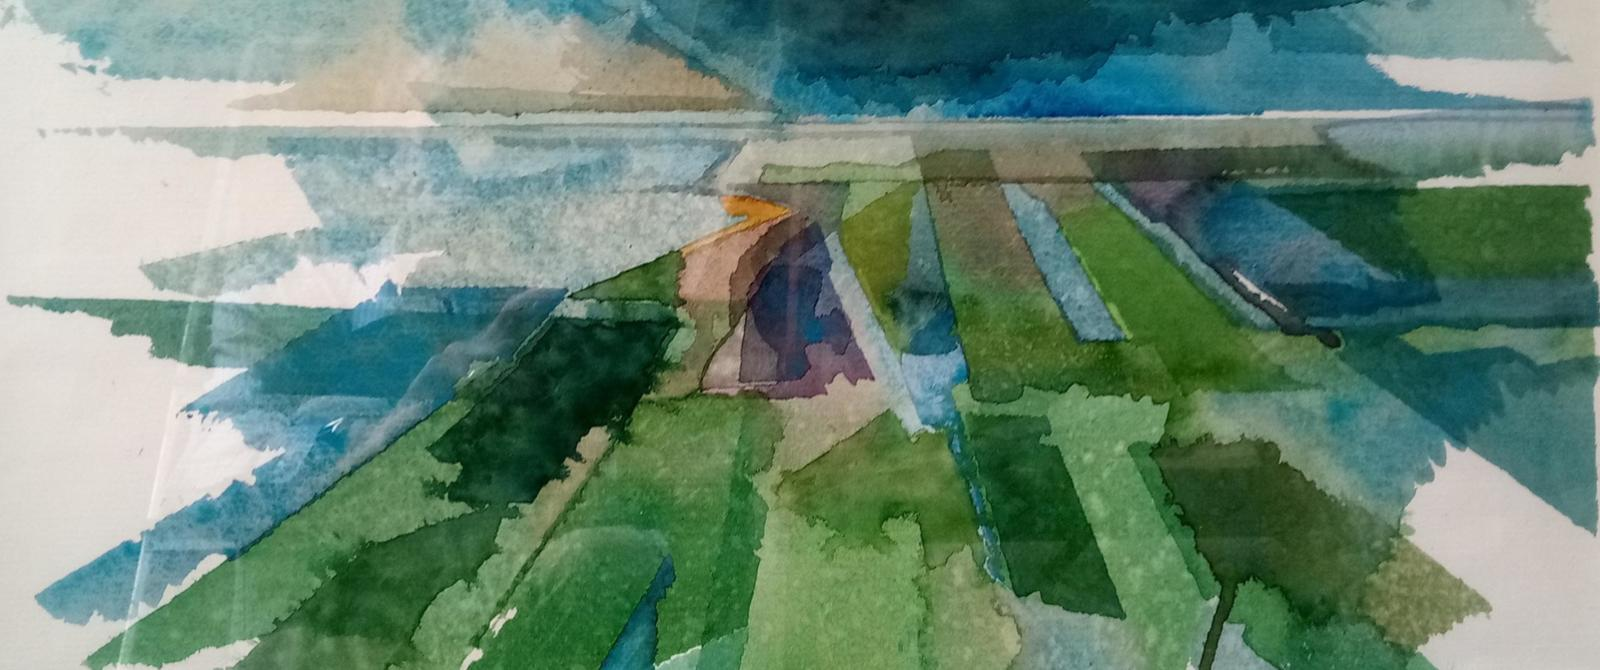 Image: John Eaves, Tidal Fields, Friesland